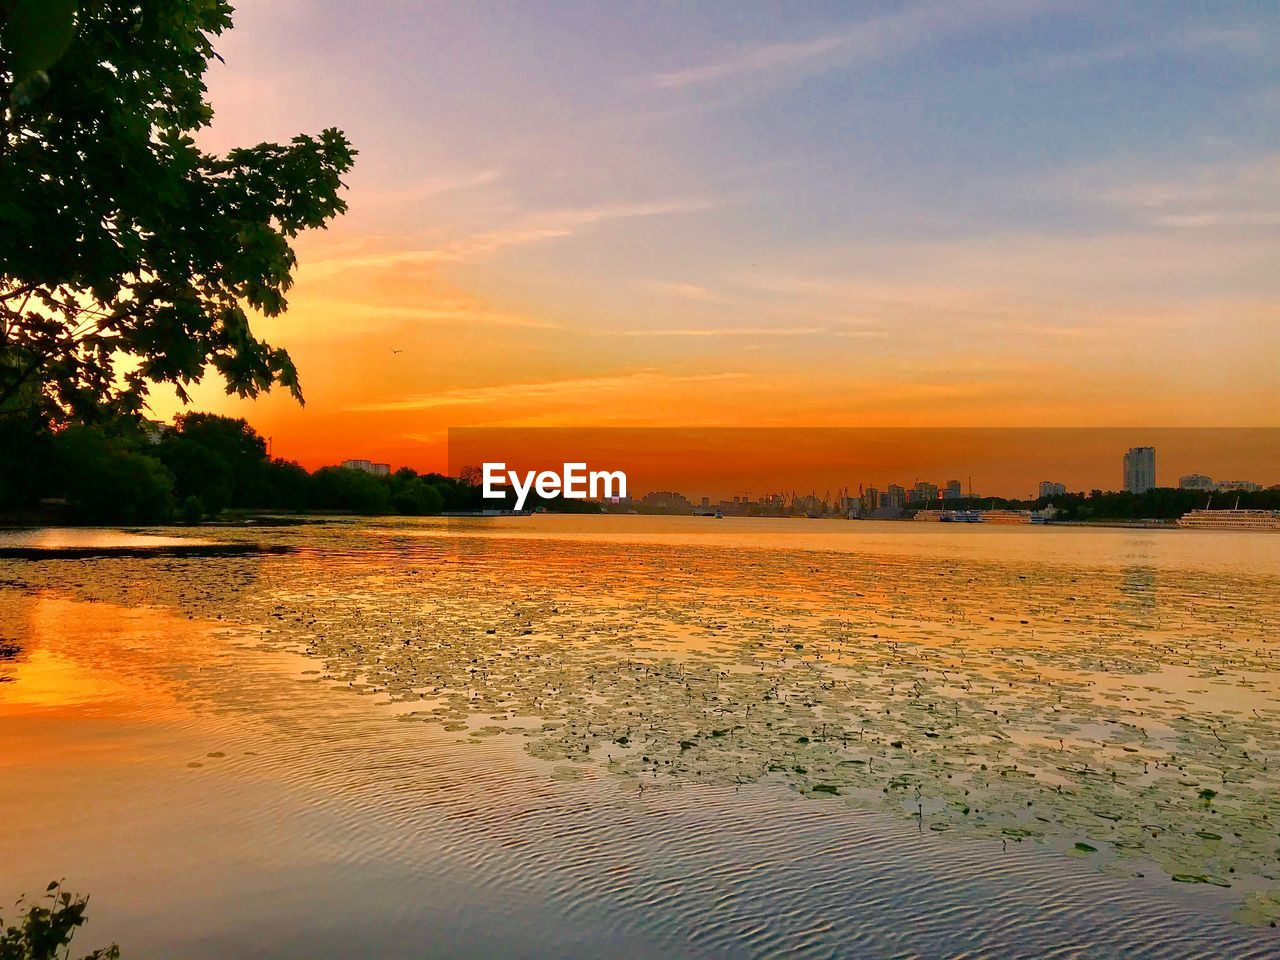 sunset, water, sky, orange color, beauty in nature, tranquility, scenics - nature, tranquil scene, cloud - sky, reflection, nature, no people, tree, plant, idyllic, waterfront, outdoors, lake